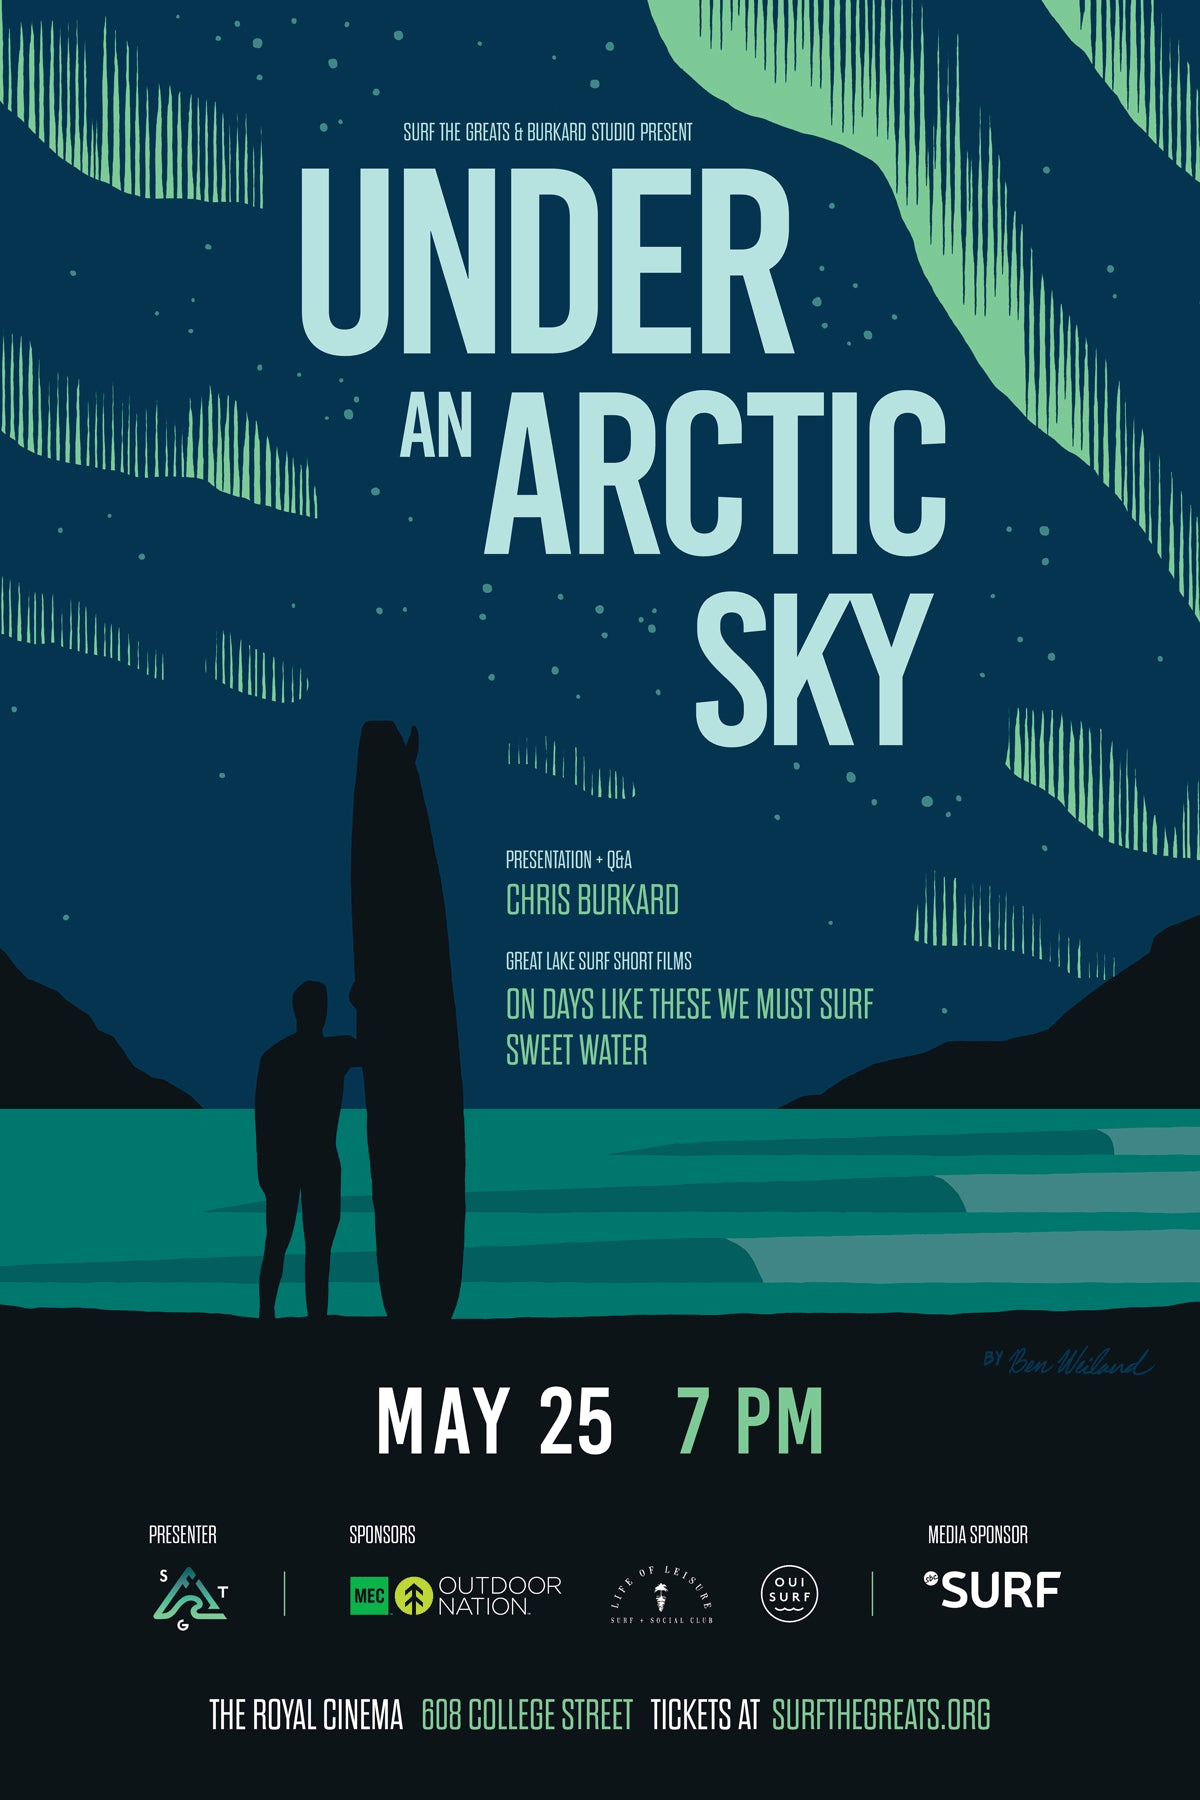 Under An Arctic Sky by Chris Burkard in Toronto